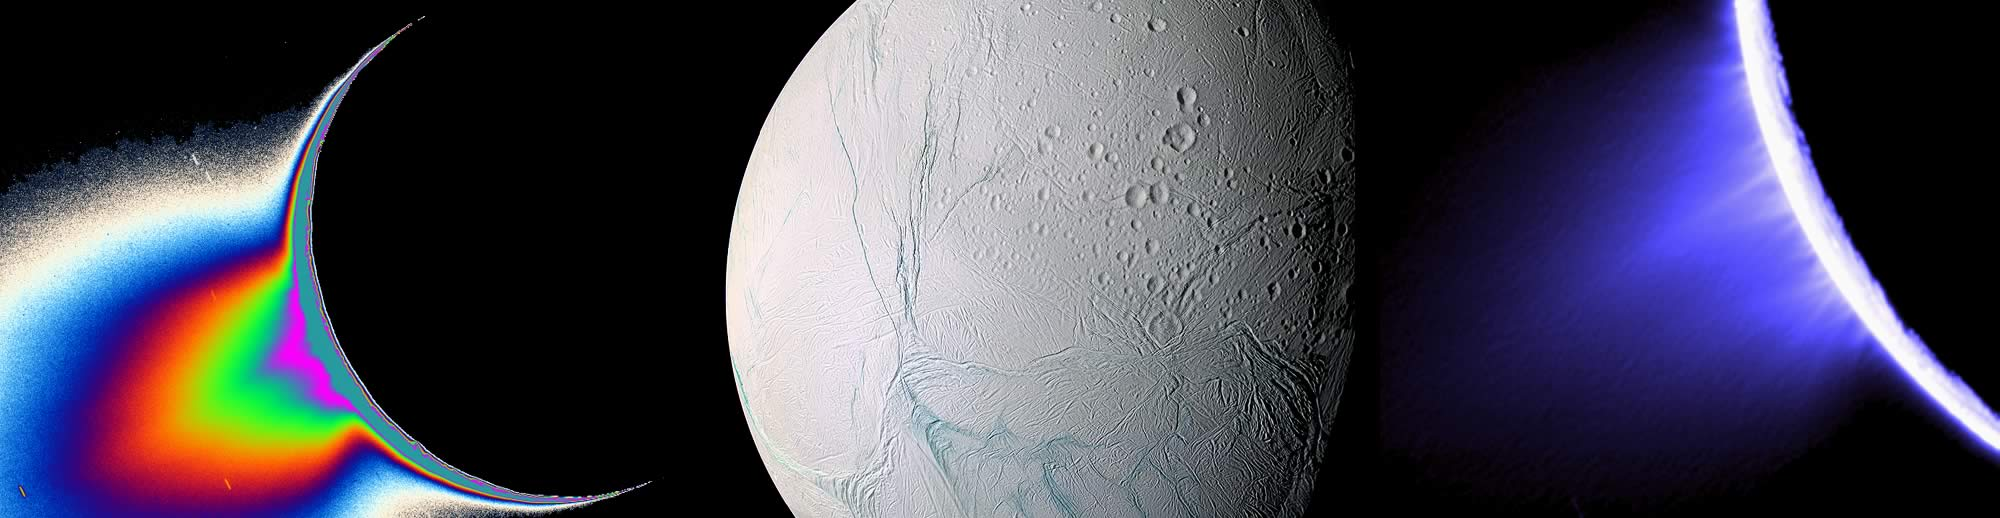 Saturn's moon Enceladus and images of plume generated by geysers on the moon